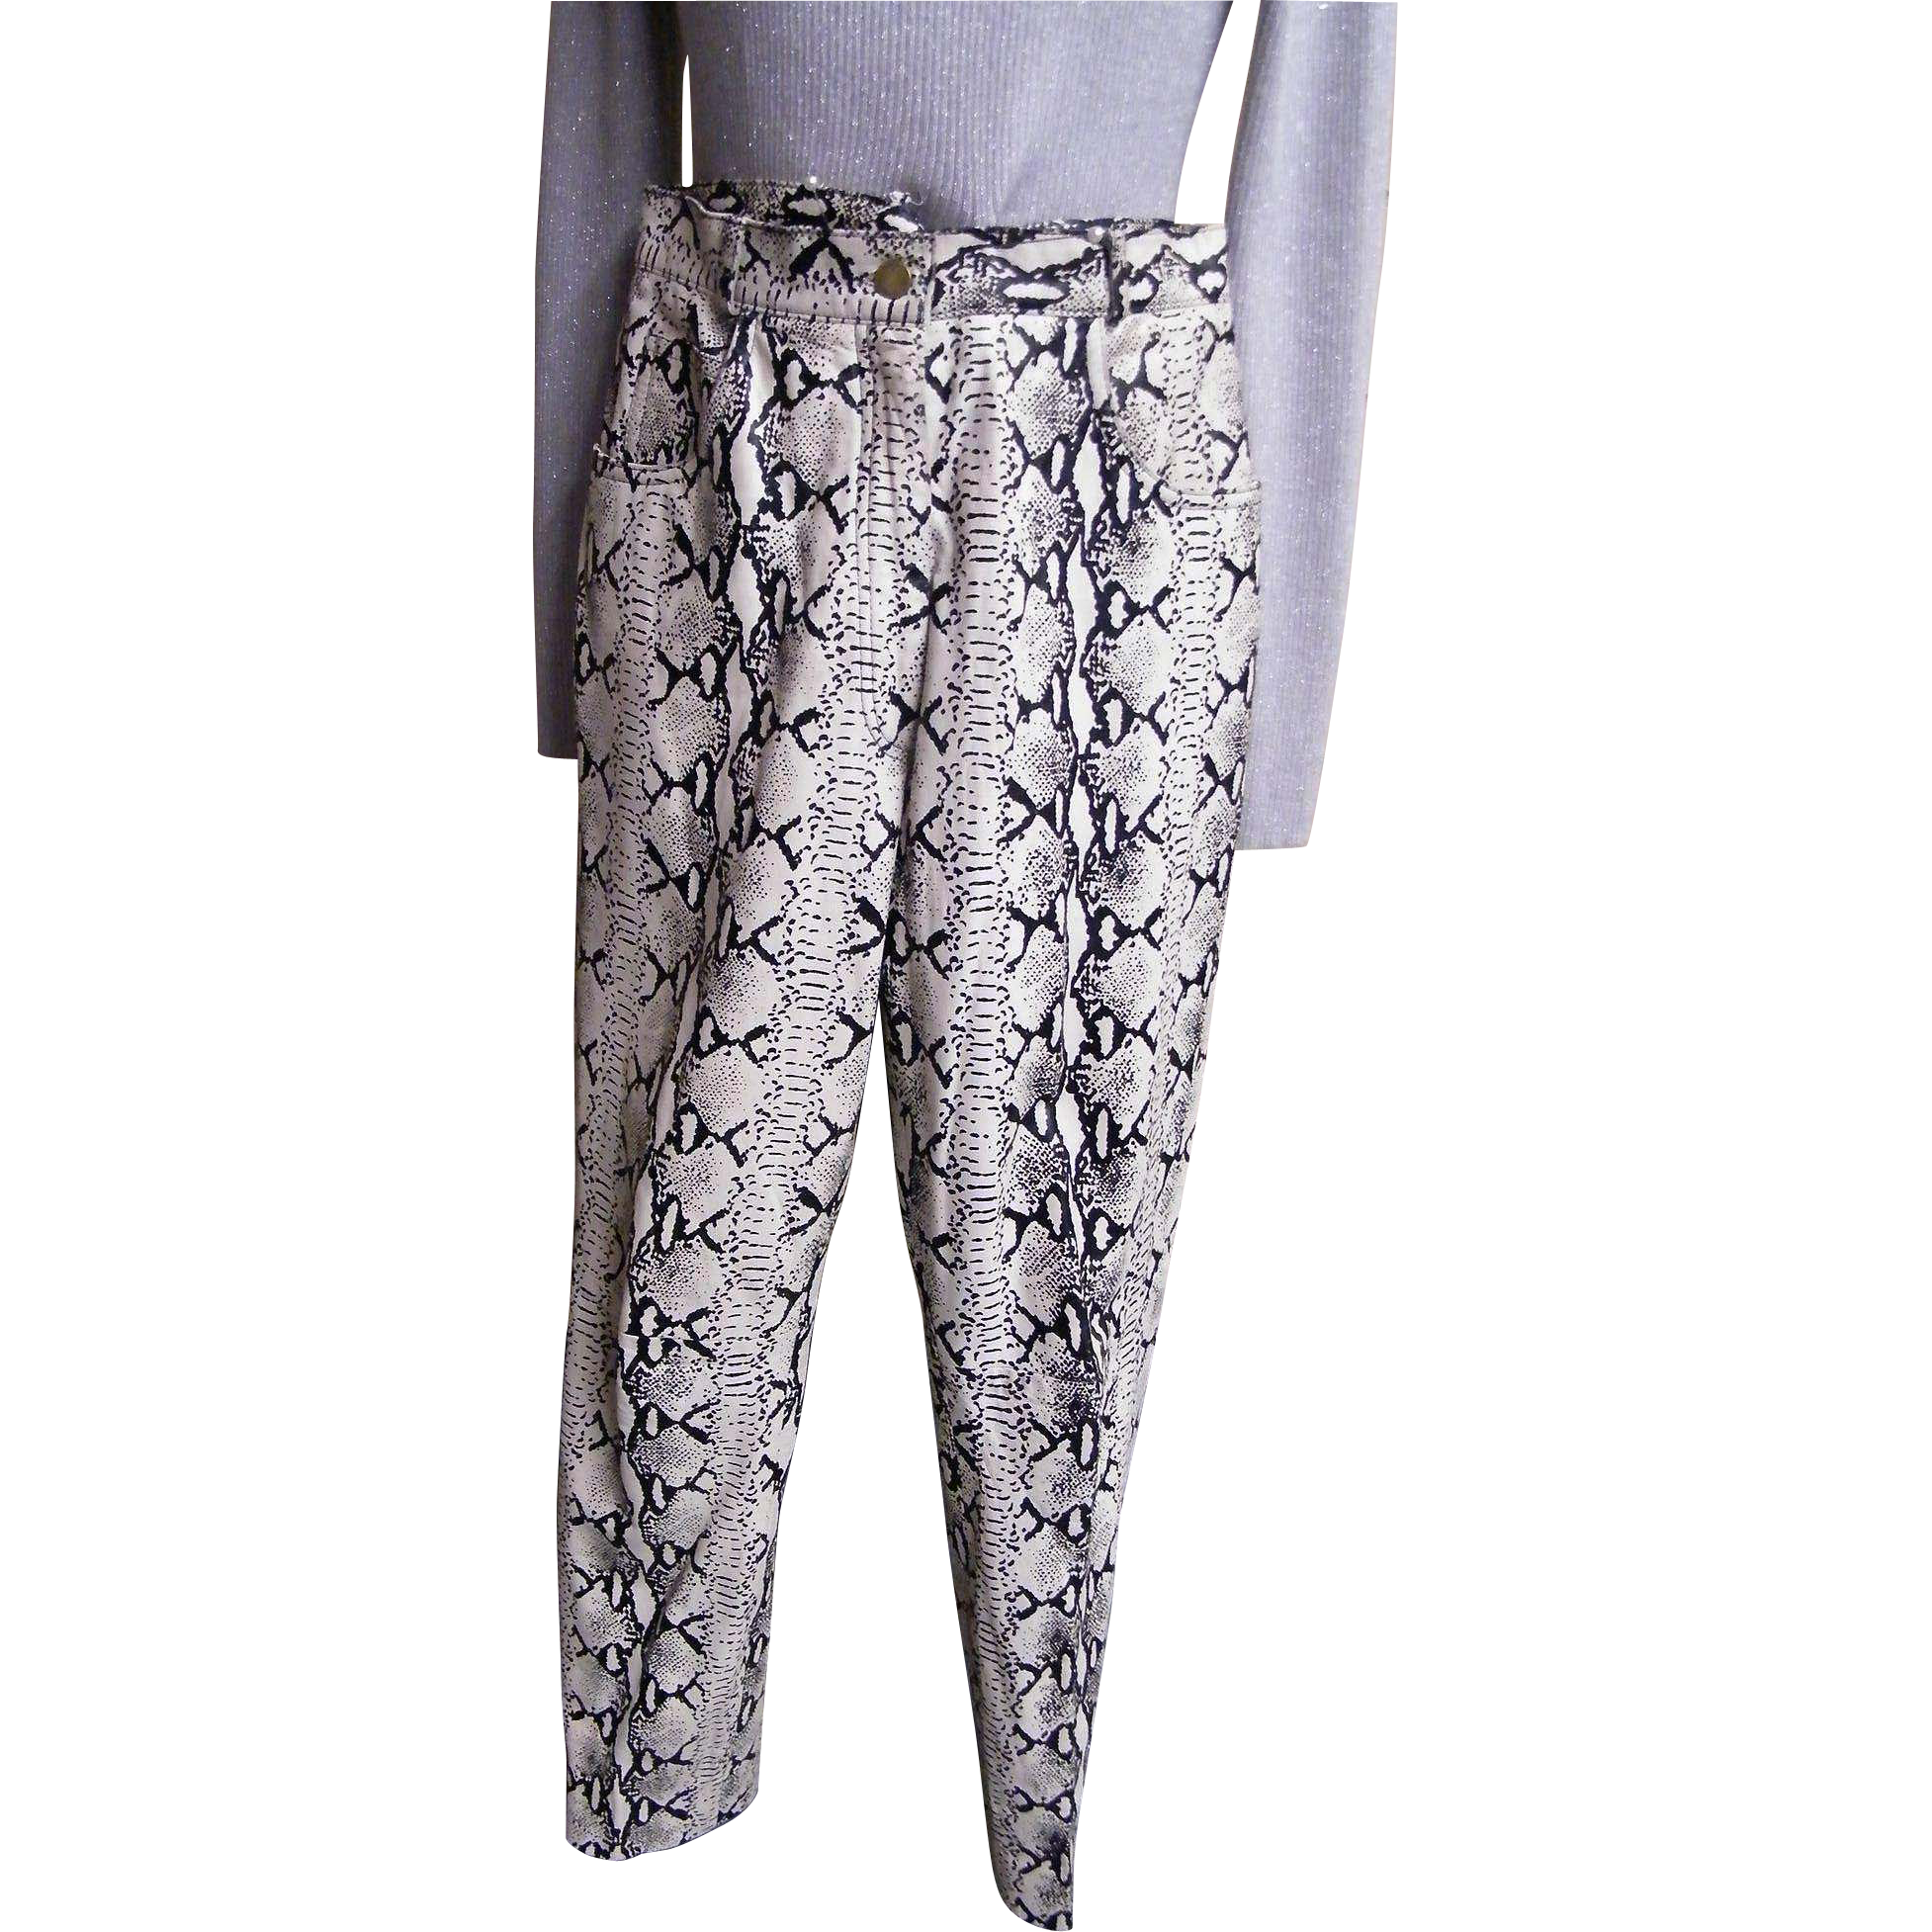 Printed Reptile Leather Ladies  Pants In Black / Off White By Perry Ellis...Size 8..USA